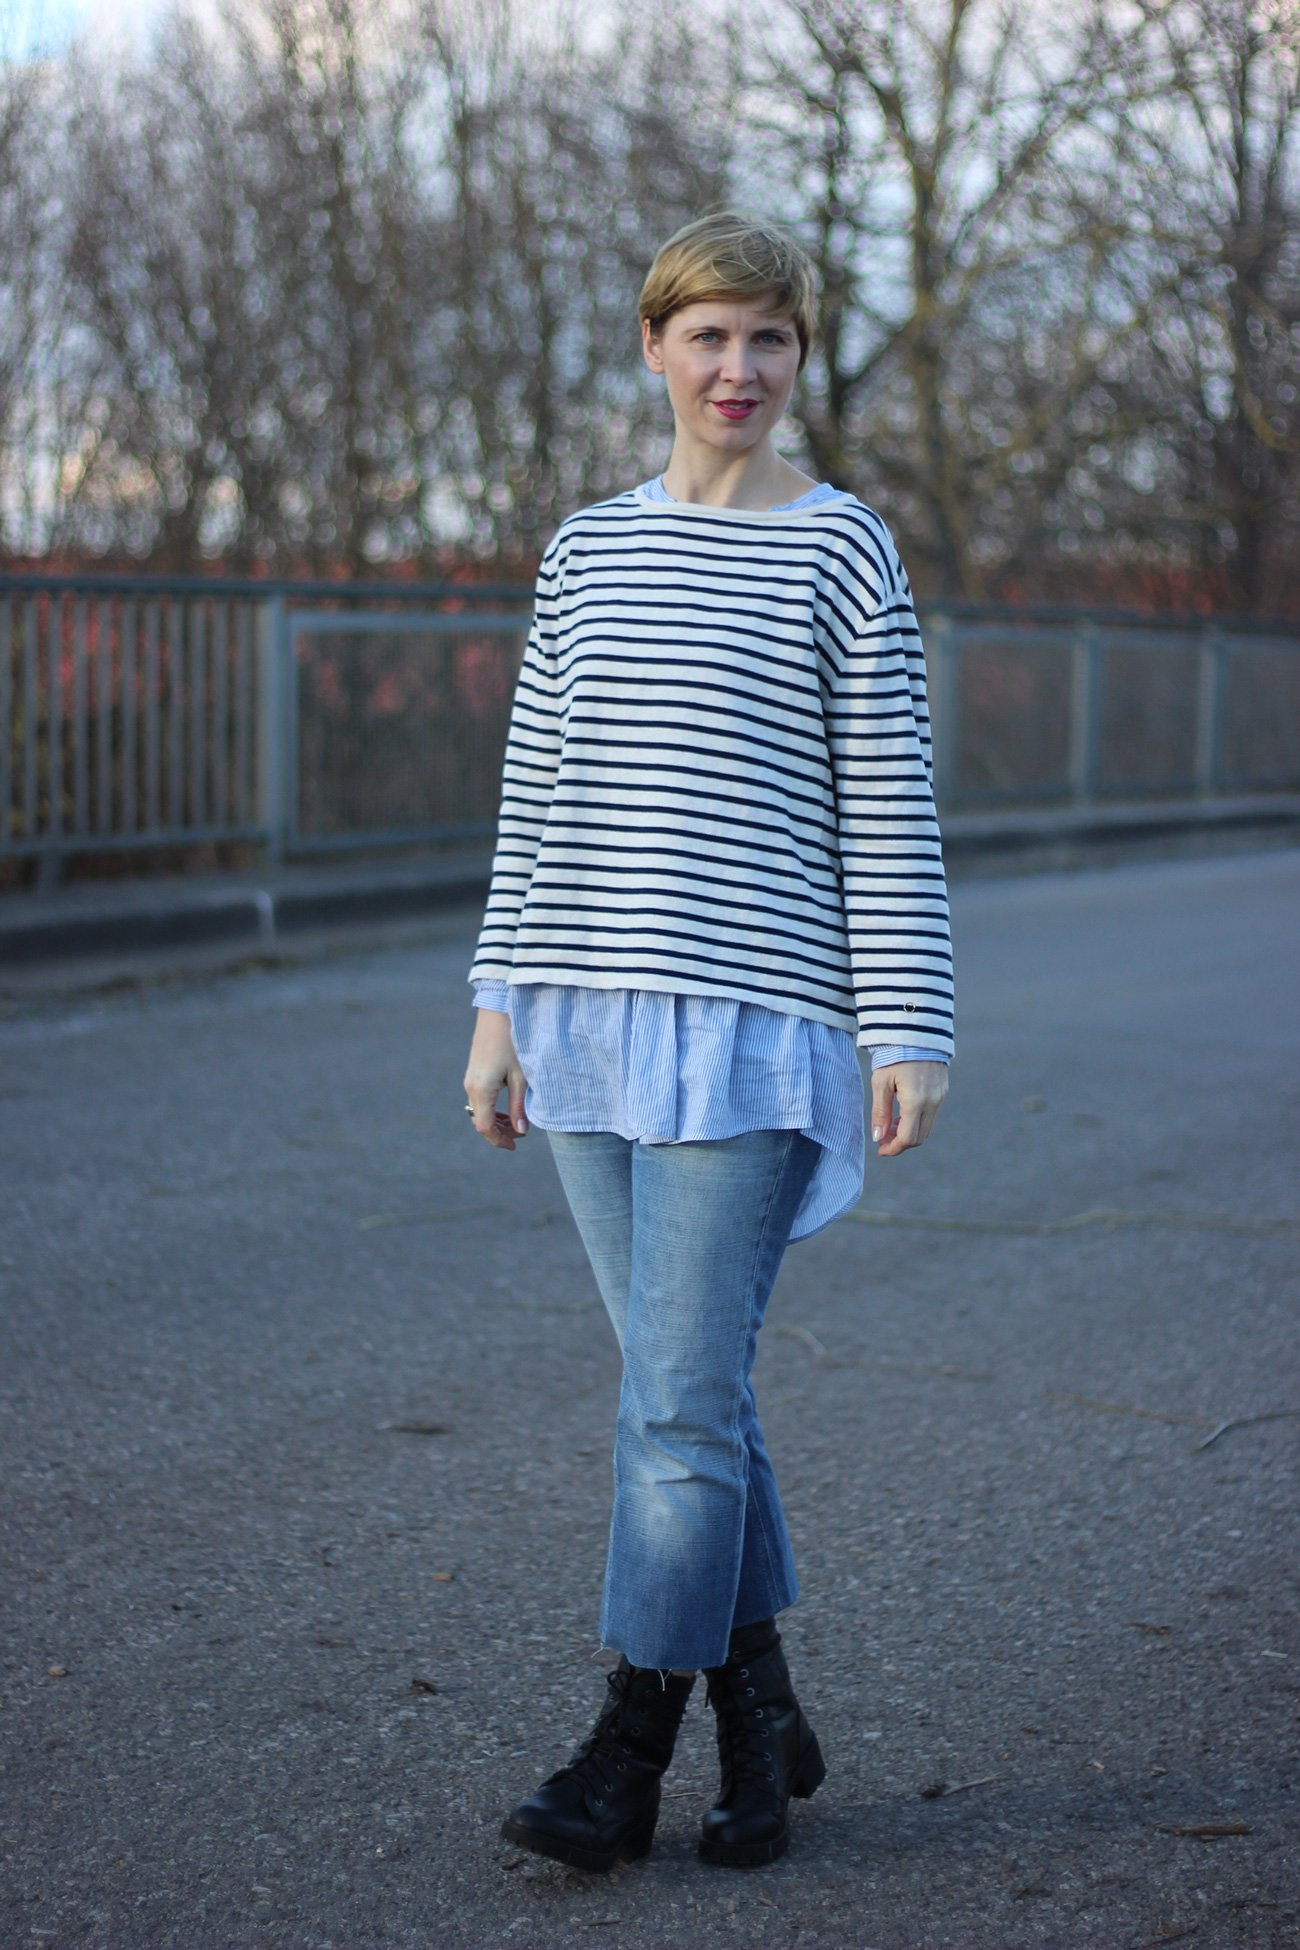 IMG_7715a-DIY-Jeans-Pepe-Bluse-H&M-Sweater-Neyo-Mantel-Schal-Lieblingsladen